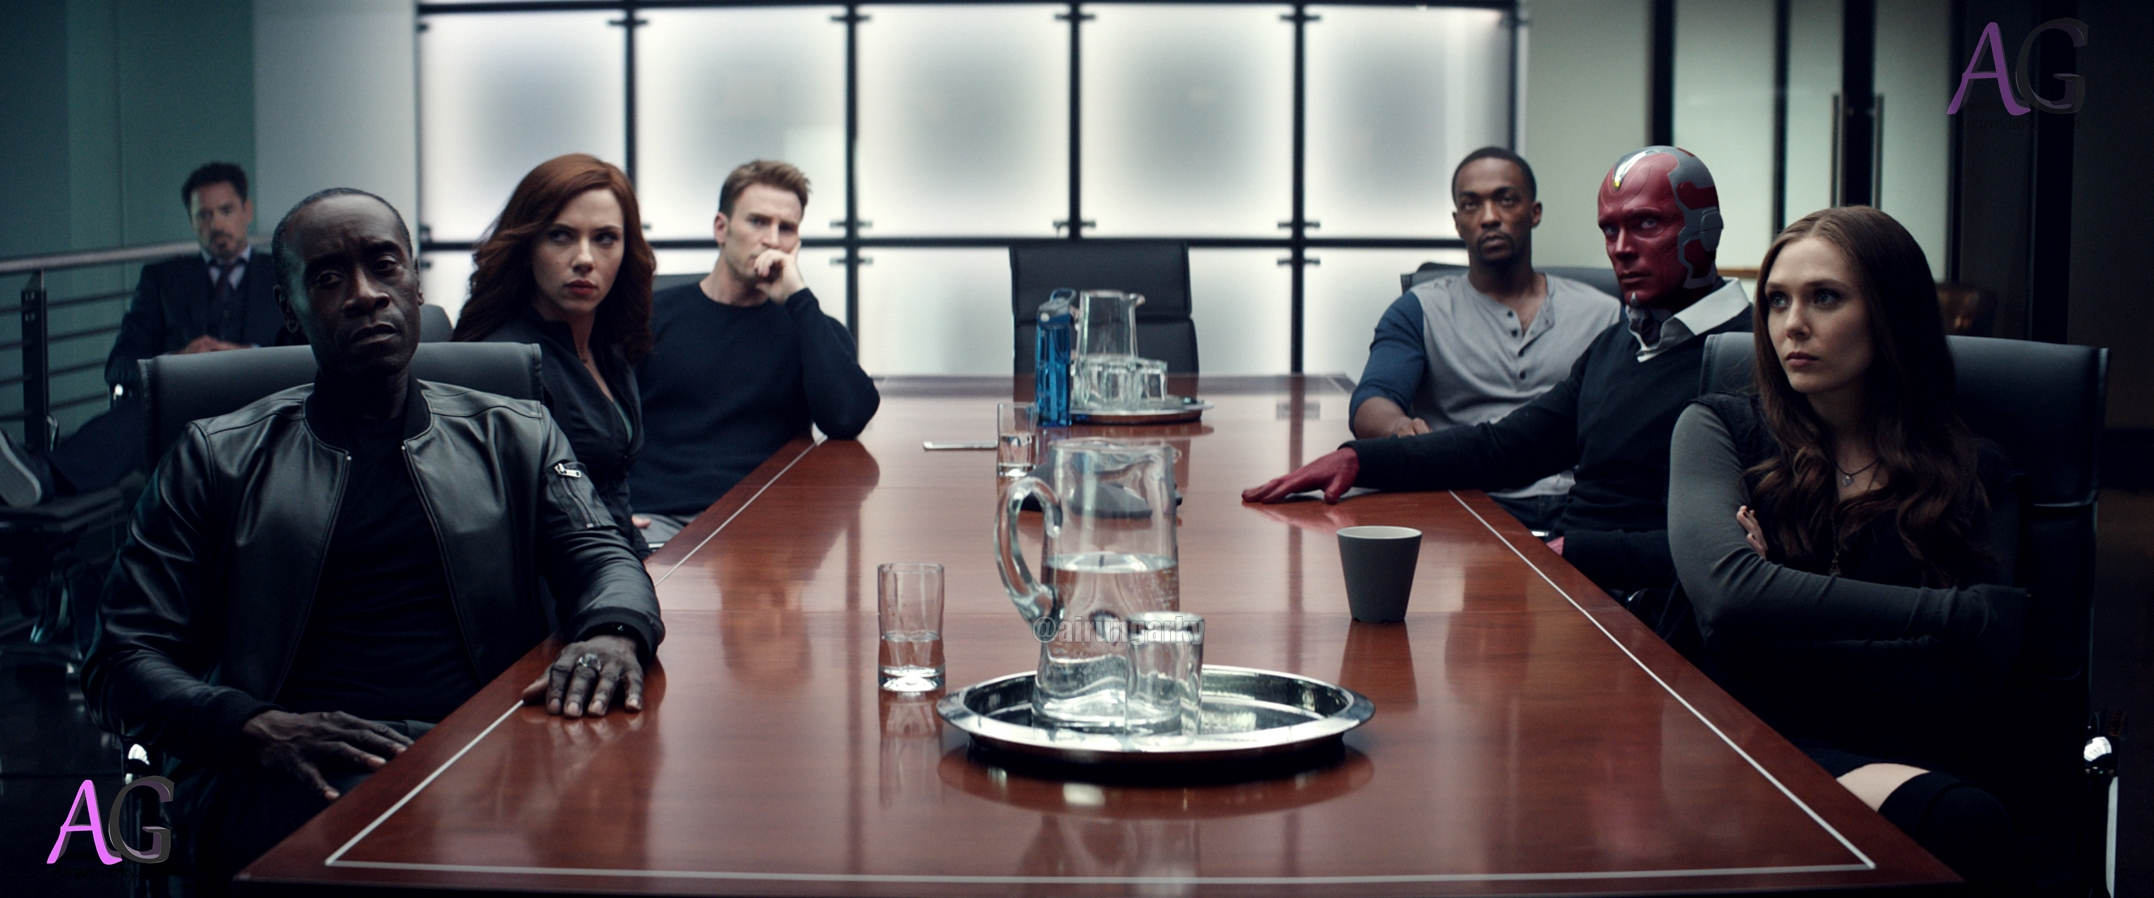 civilwar hi-res avengers in the table